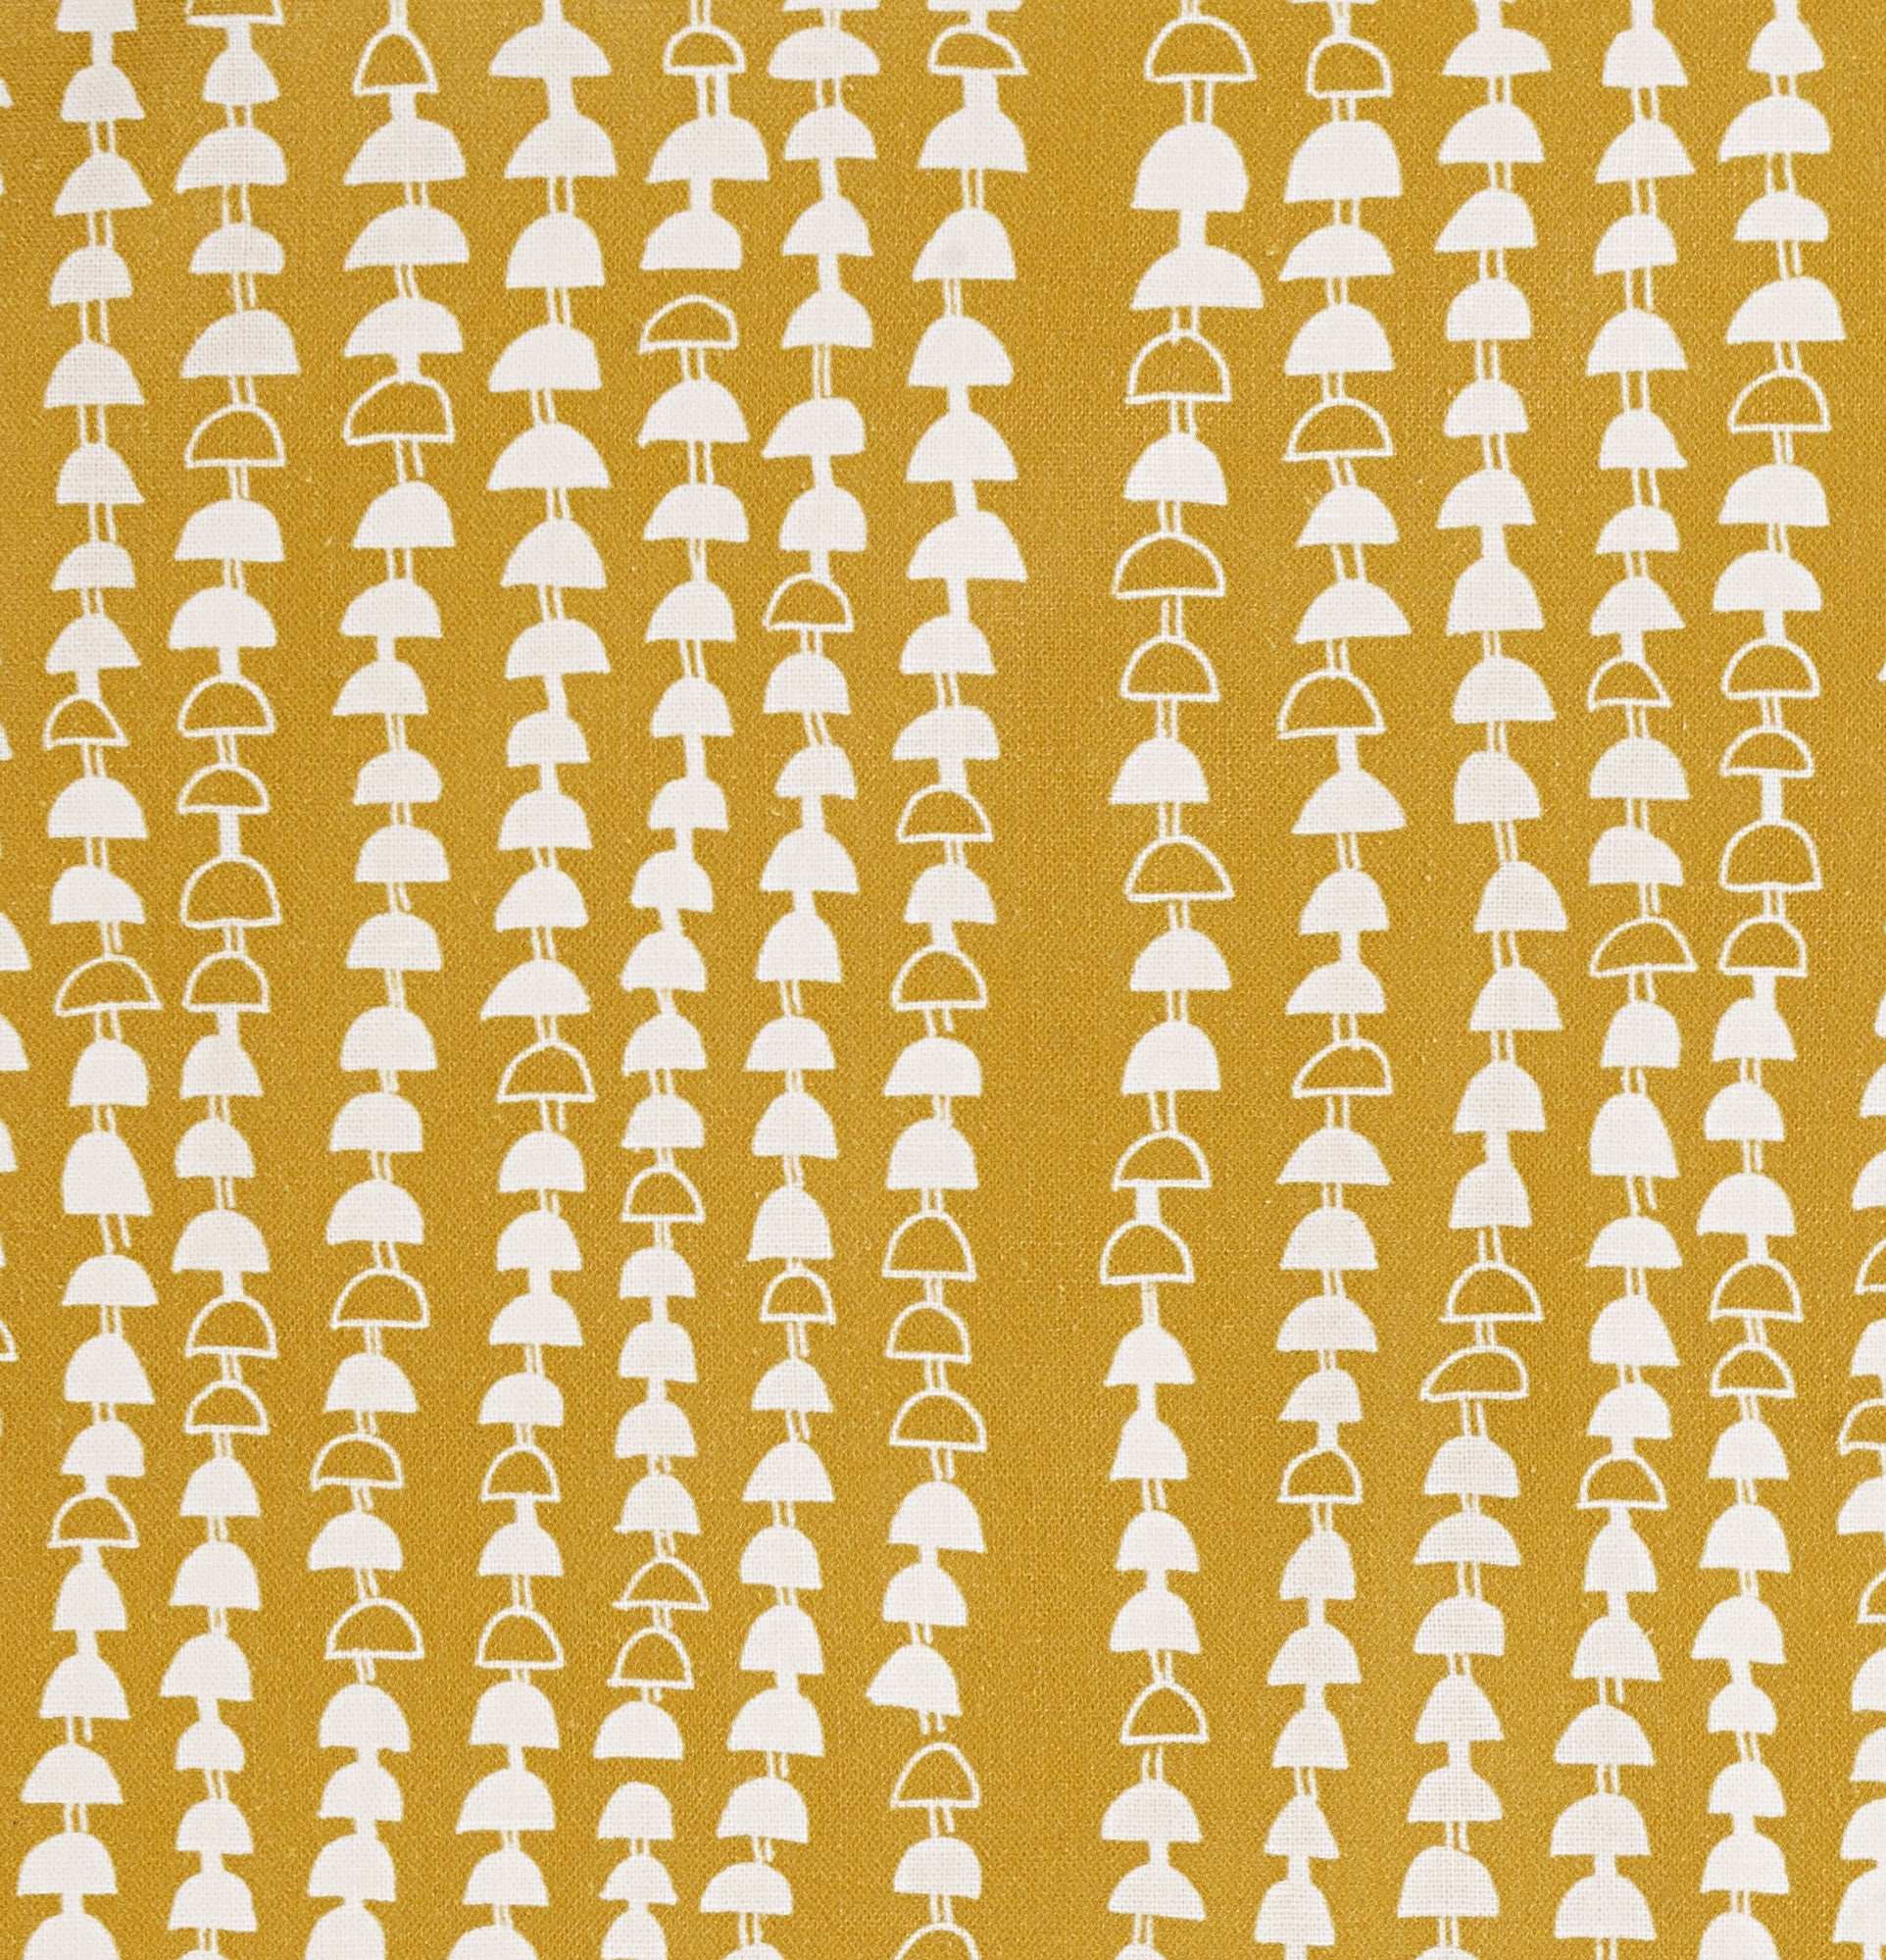 Hopi Graphic Strung Bead Pattern Cotton Linen & Canvas Fabric by the Yard in Mustard Gold